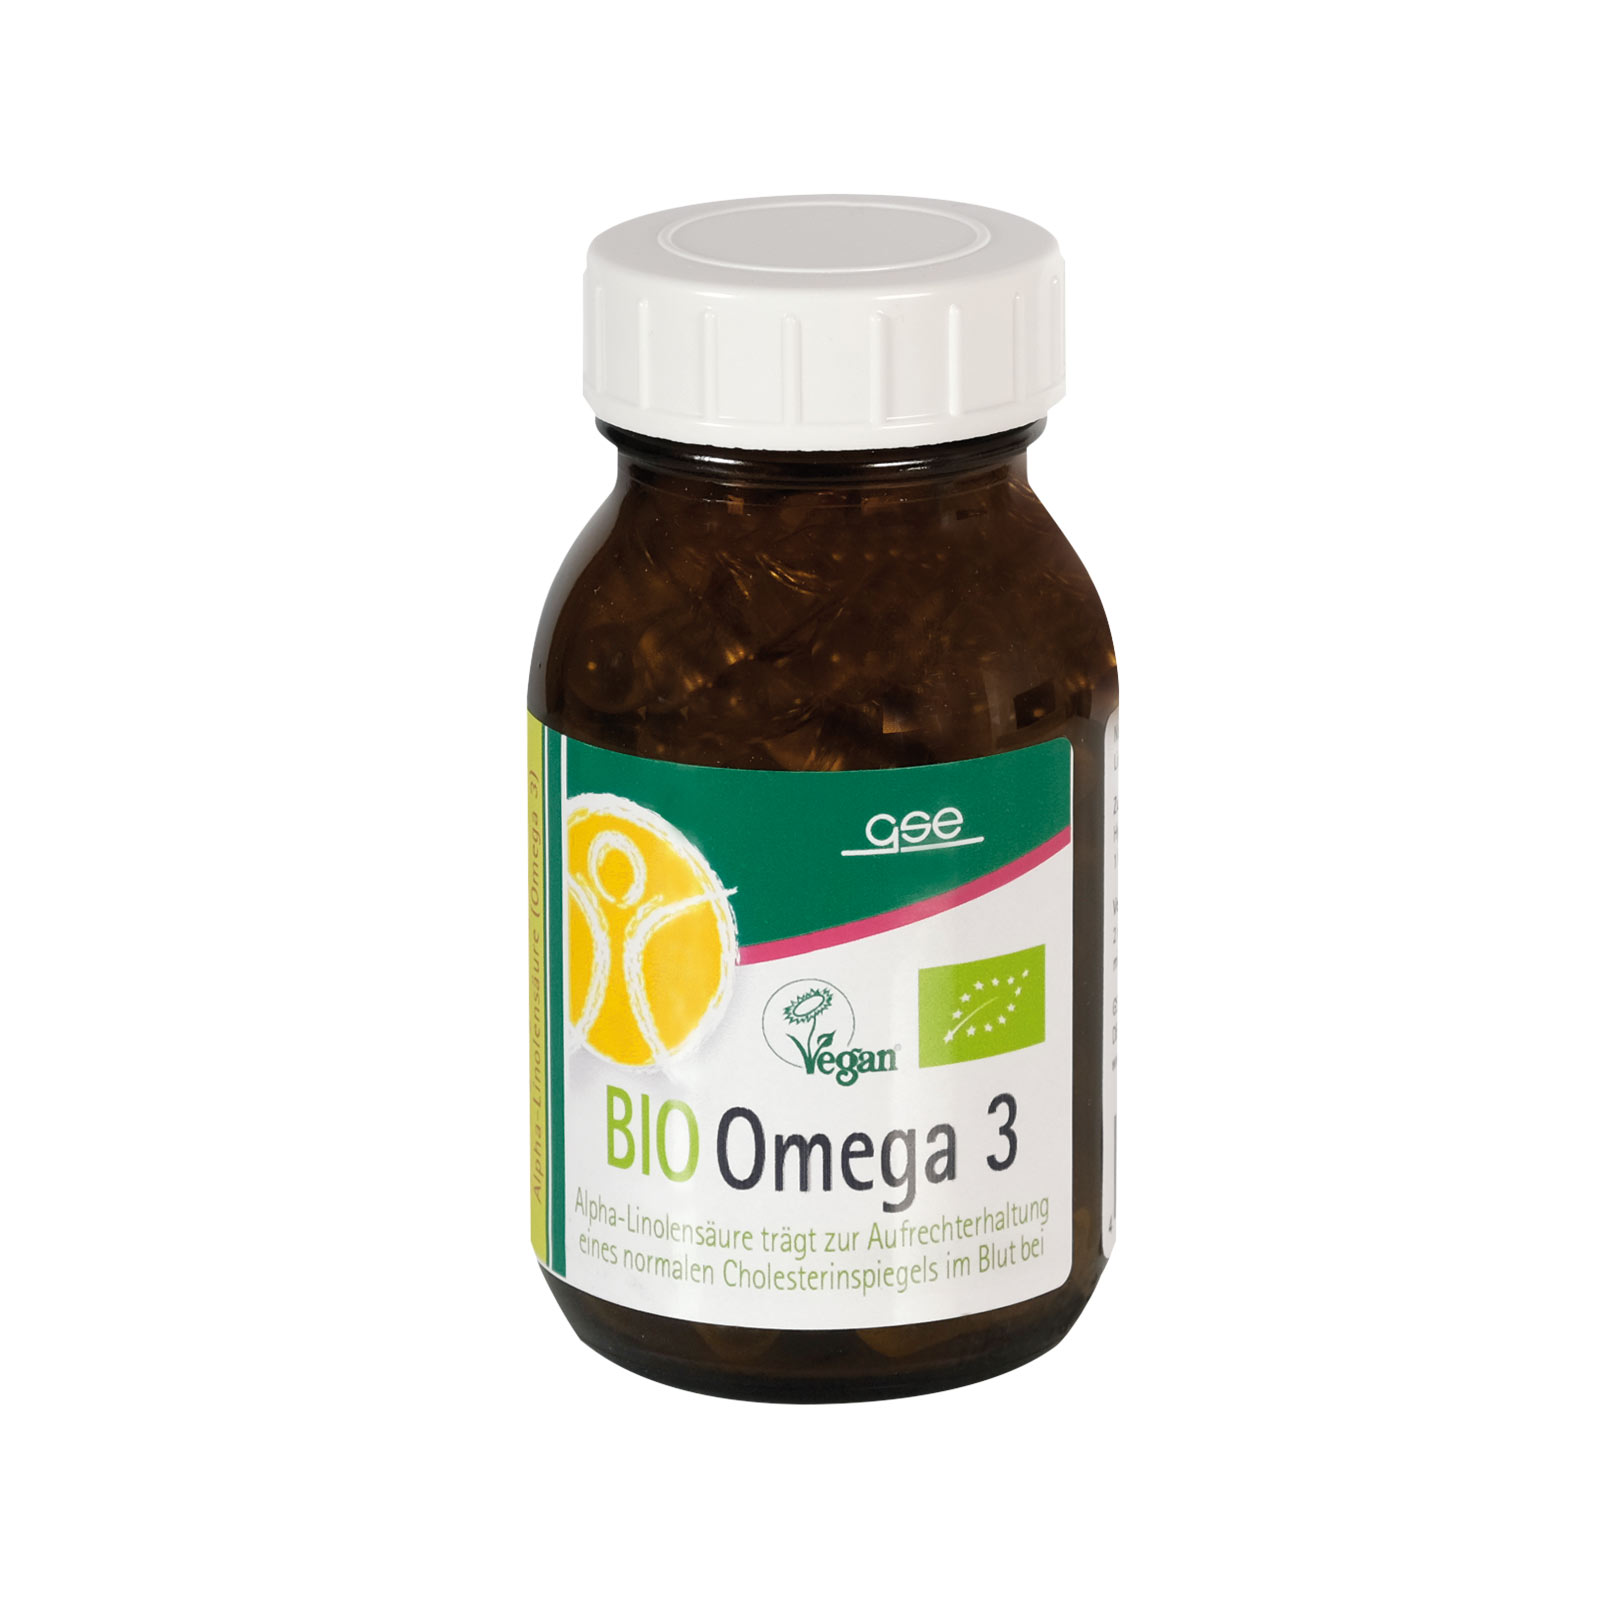 omega 3 organic perilla oil capsules vegan purenature. Black Bedroom Furniture Sets. Home Design Ideas